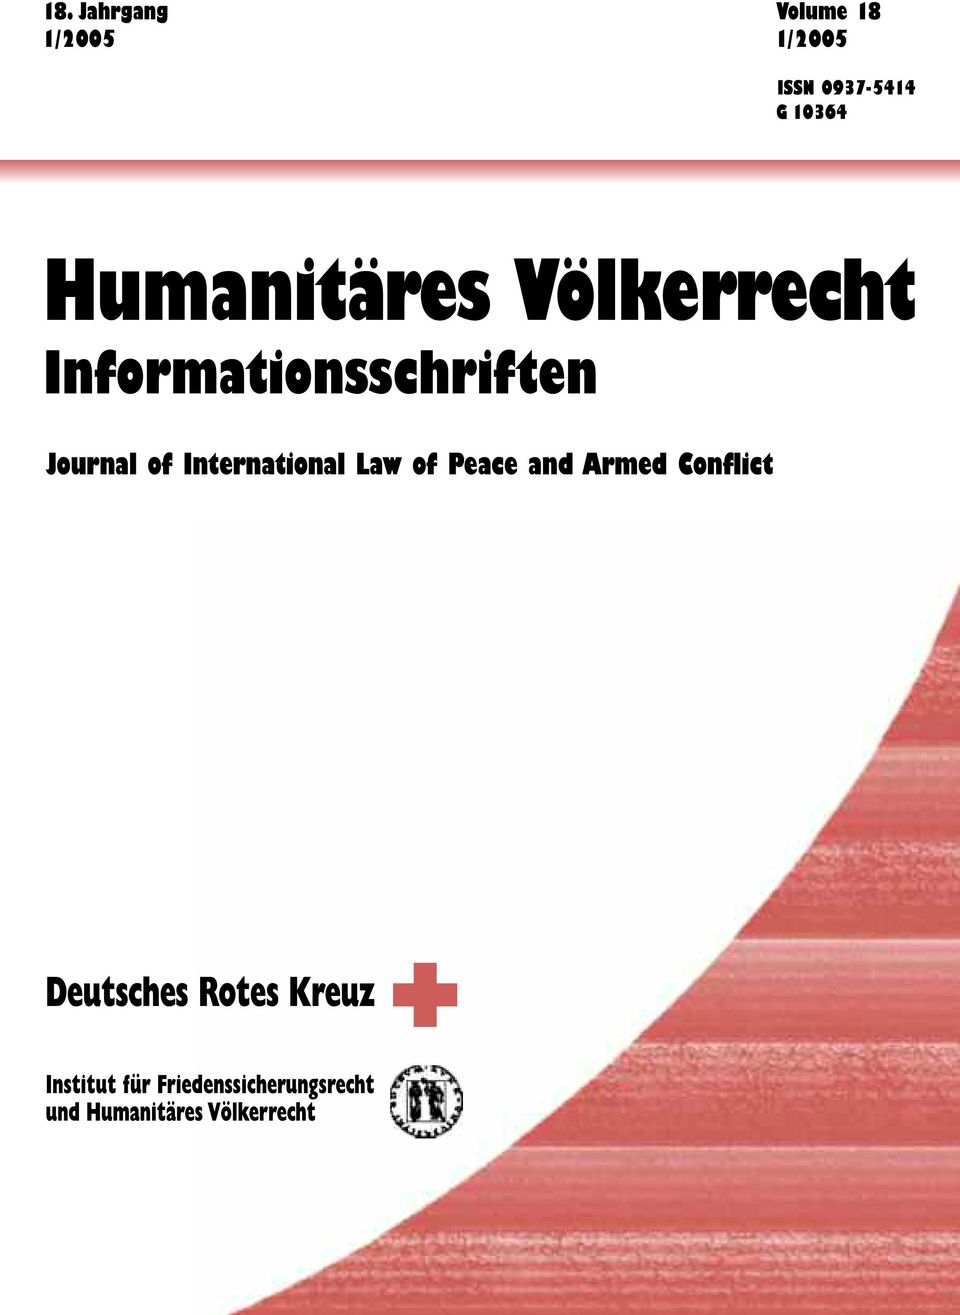 International Law of Peace and Armed Conflict Deutsches Rotes